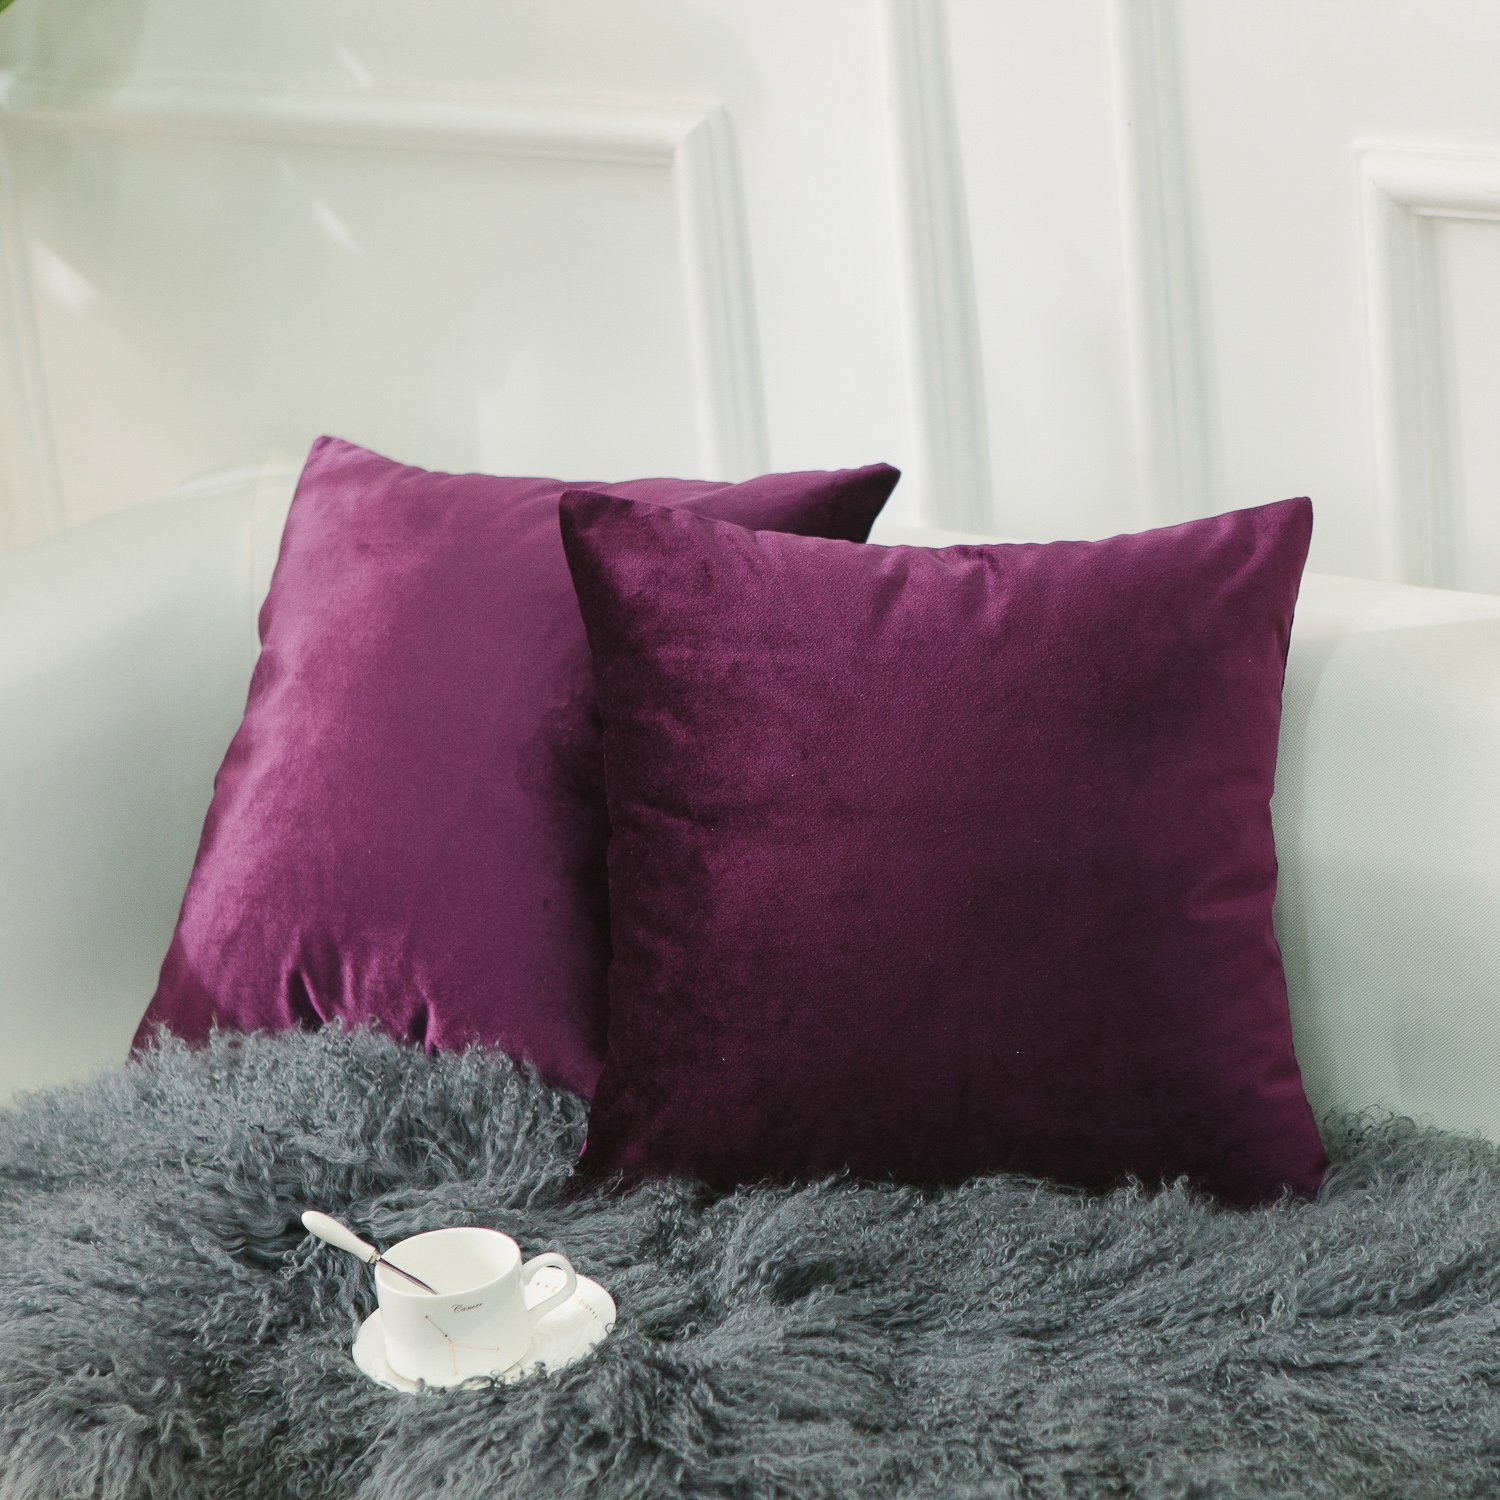 """HOME BRILLIANT 2 Pack Plain Velvet Throw Pillow Covers Decorative Square Cushion Covers PillowCases Set for Couch Bench Bed Car, 45x45 cm(18""""x18""""), Eggplant"""